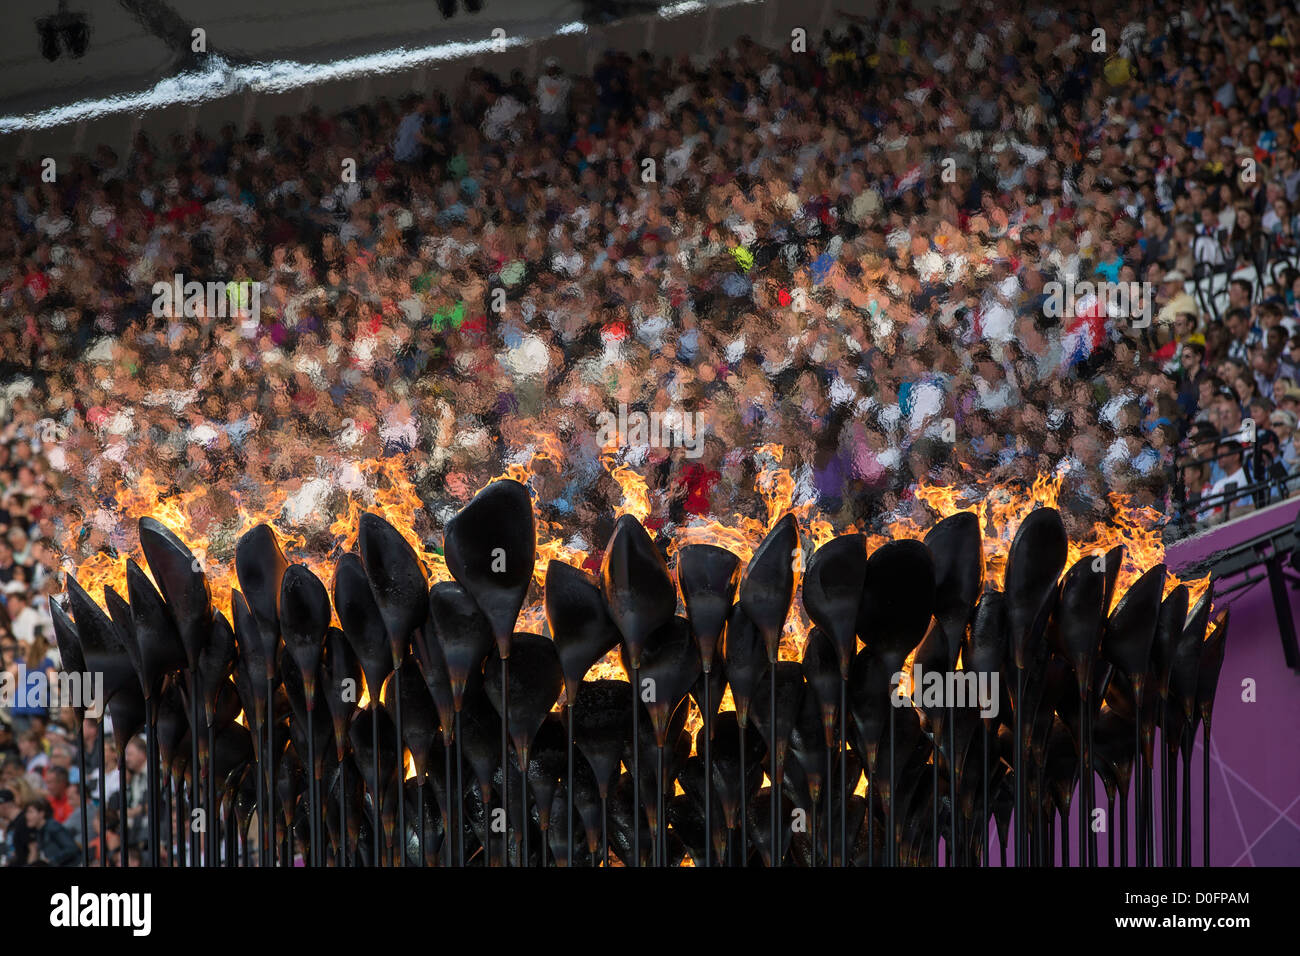 The Olympic Flame at the Olympic Summer Games, London 2012 - Stock Image